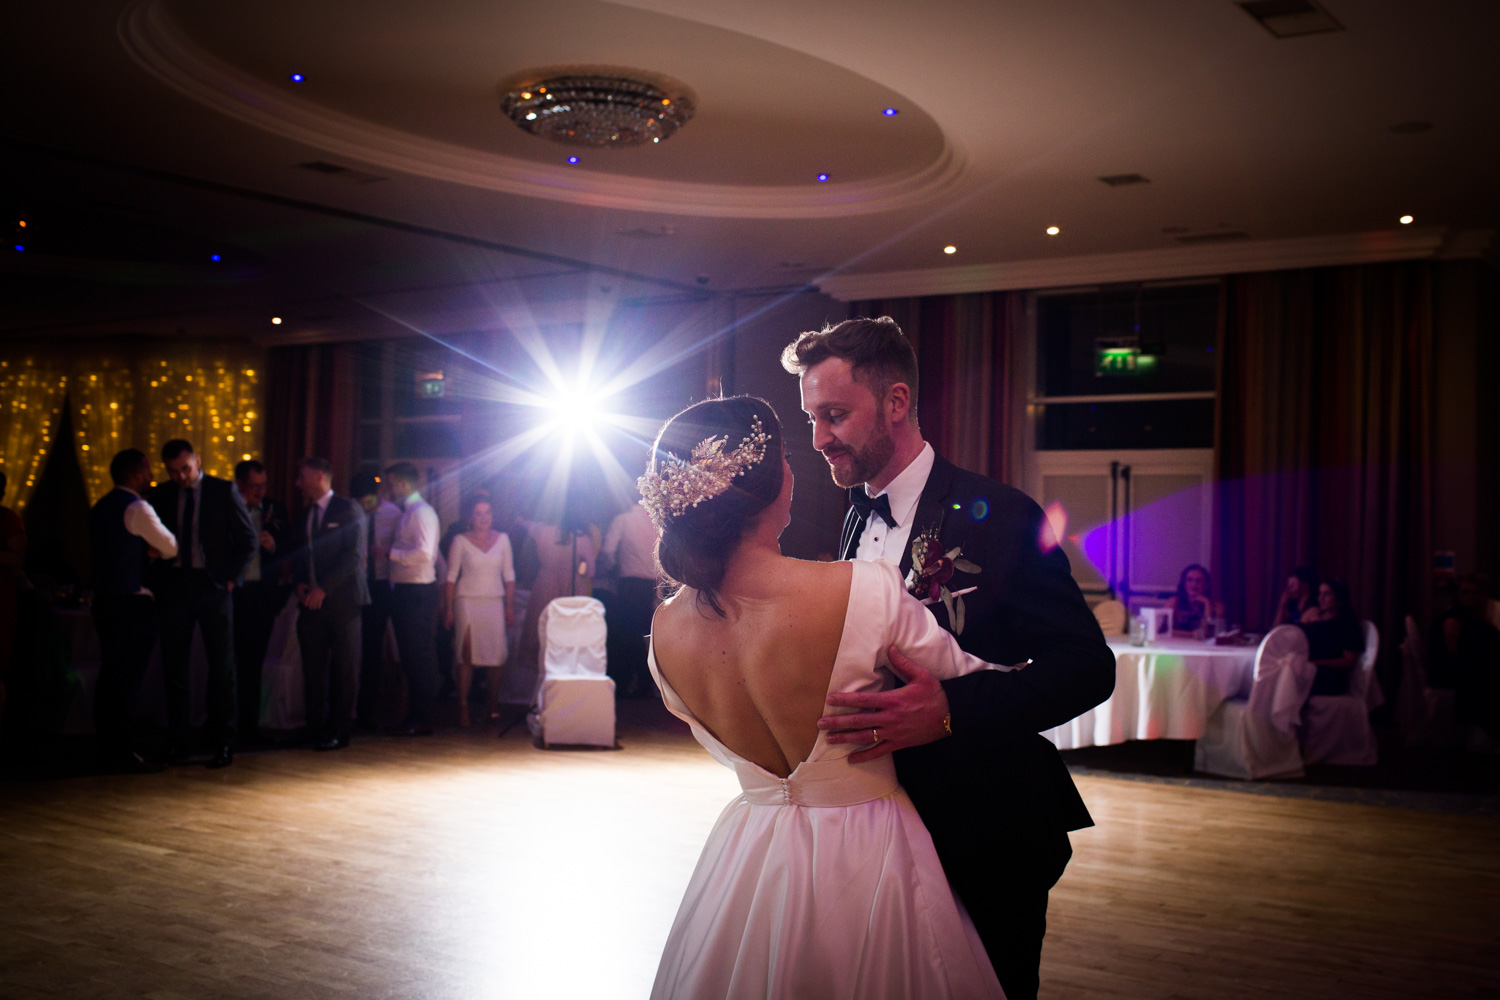 Mark_Barnes_Northern_Ireland_wedding_photographer_Innishowen_Gateway_Donegal_Wedding_photography_Donegal_wedding_photographer-67.jpg